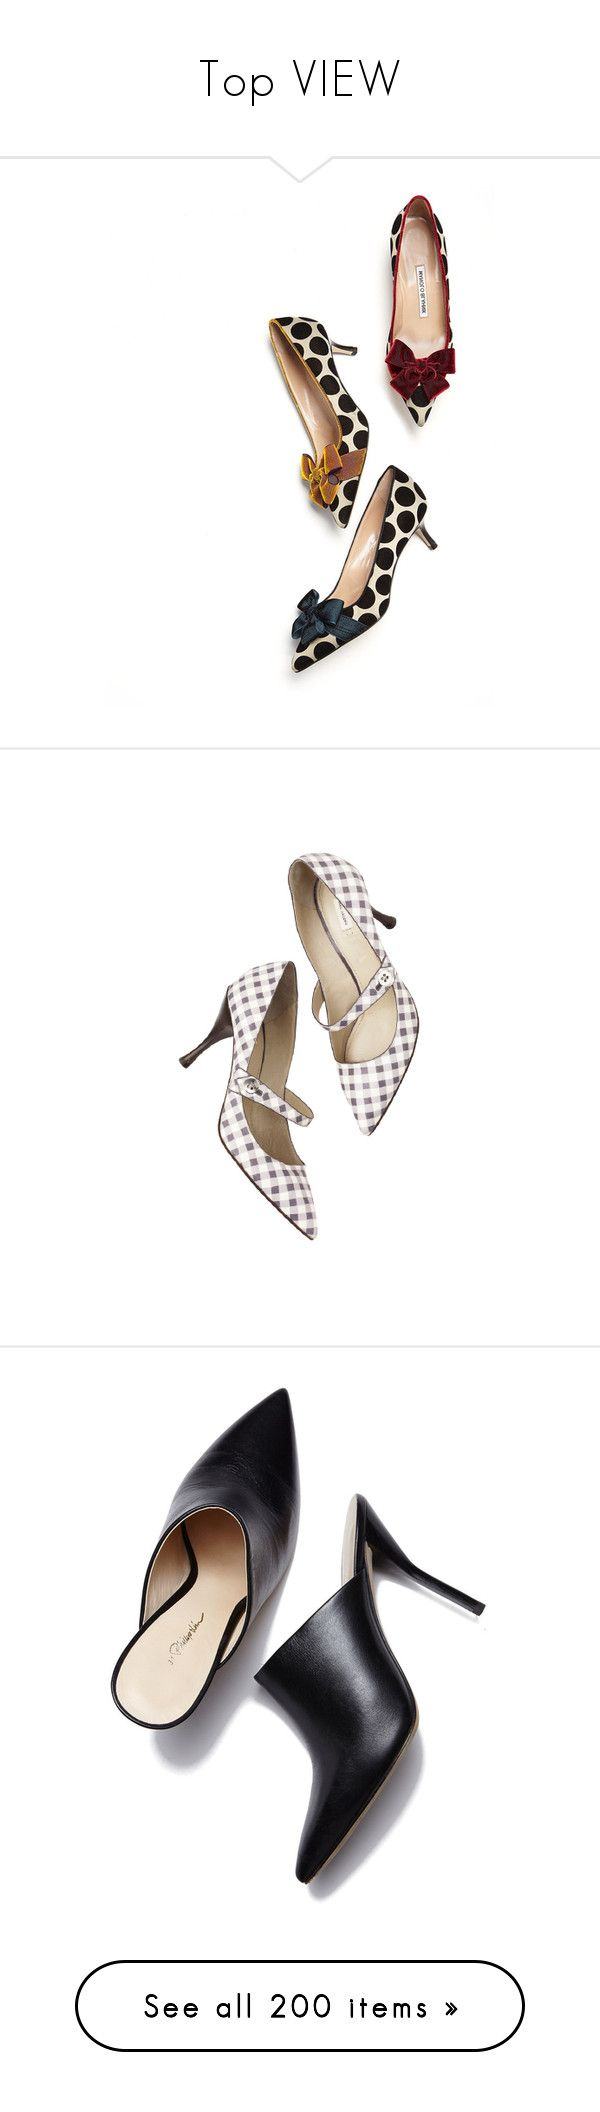 """""""Top VIEW"""" by katerina8606 ❤ liked on Polyvore featuring shoes, pumps, evening pumps, velvet pumps, evening shoes, gold pumps, velvet shoes, heels, marc jacobs and heel pump"""